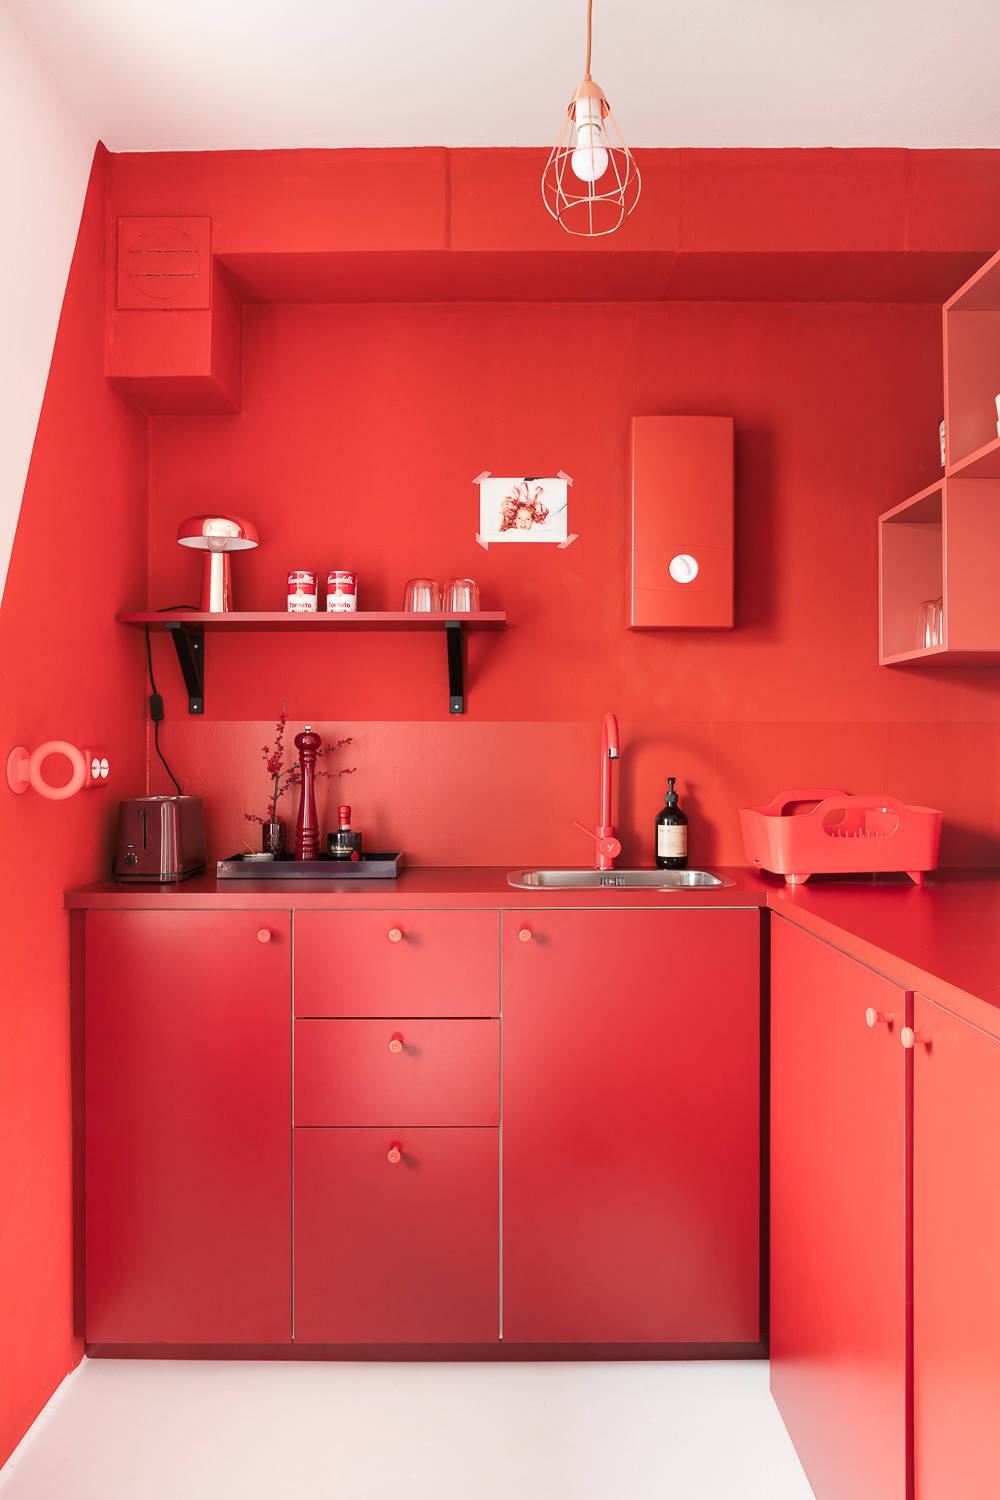 75 Beautiful Small Red Kitchen Pictures Ideas April 2021 Houzz